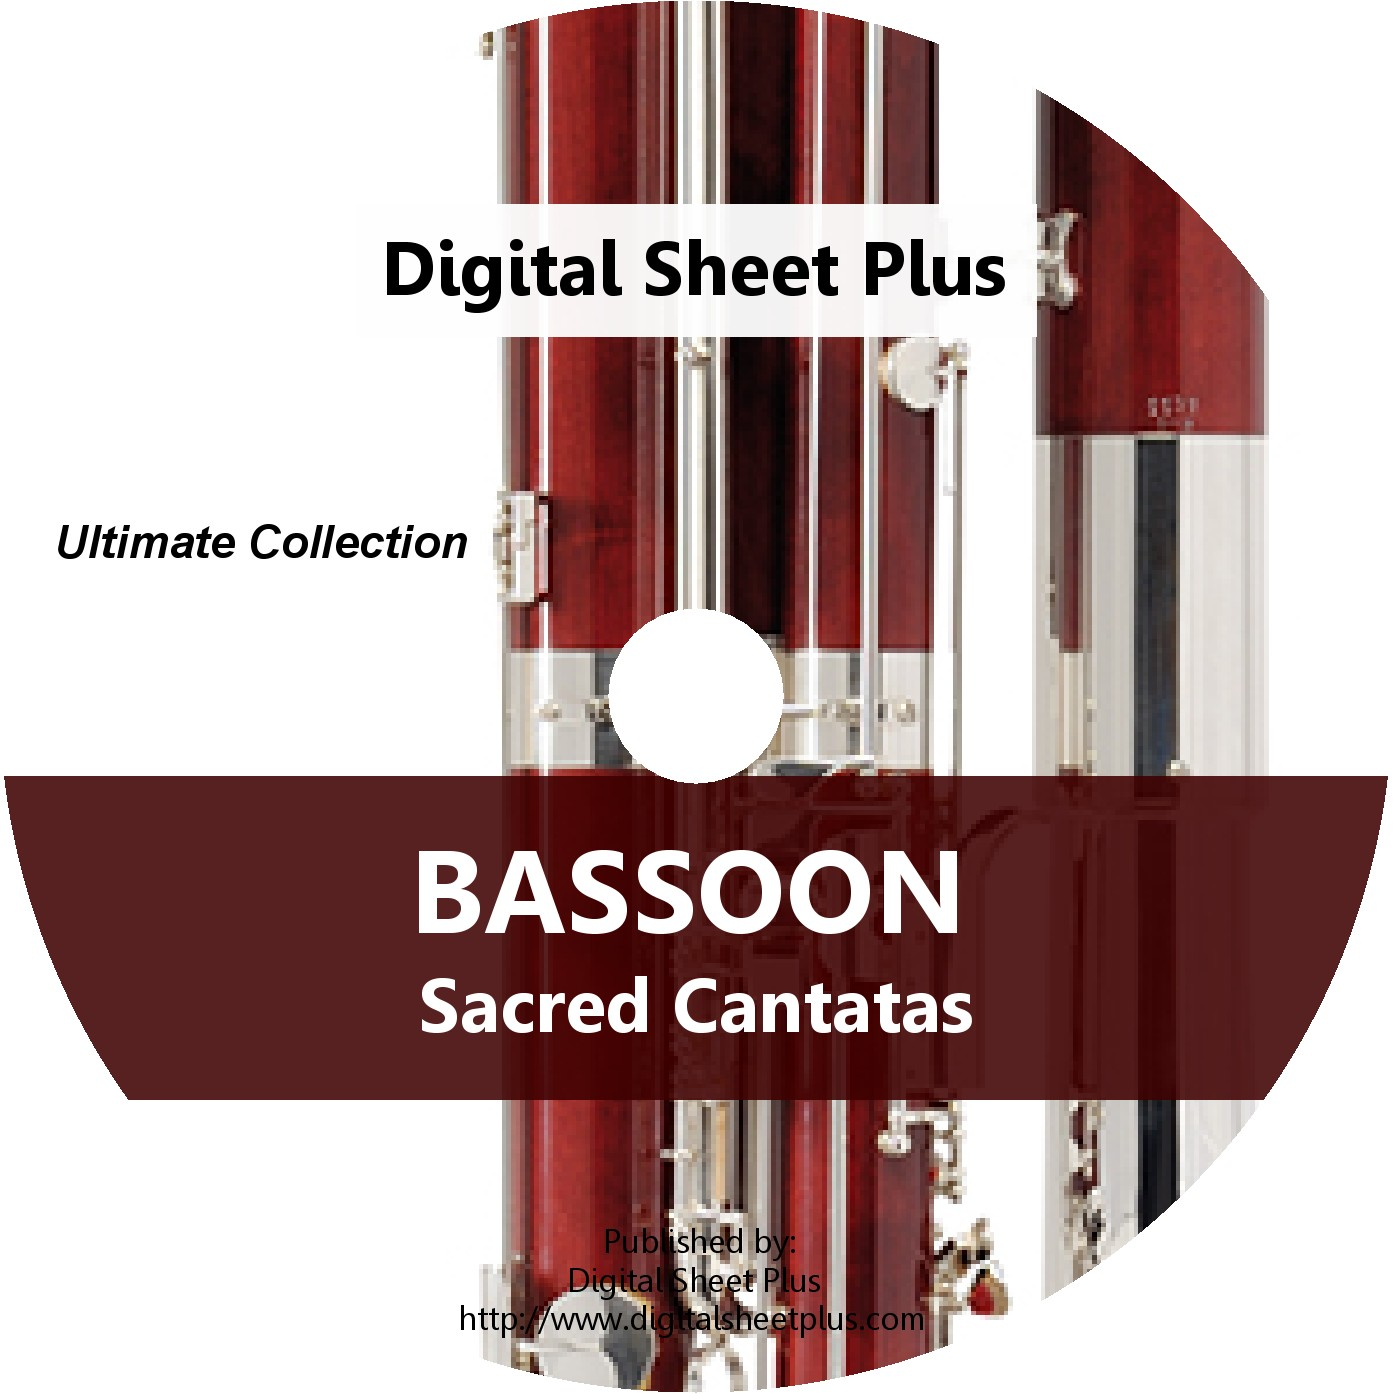 bassoon_sacred_cantatas_cd_cover.jpg